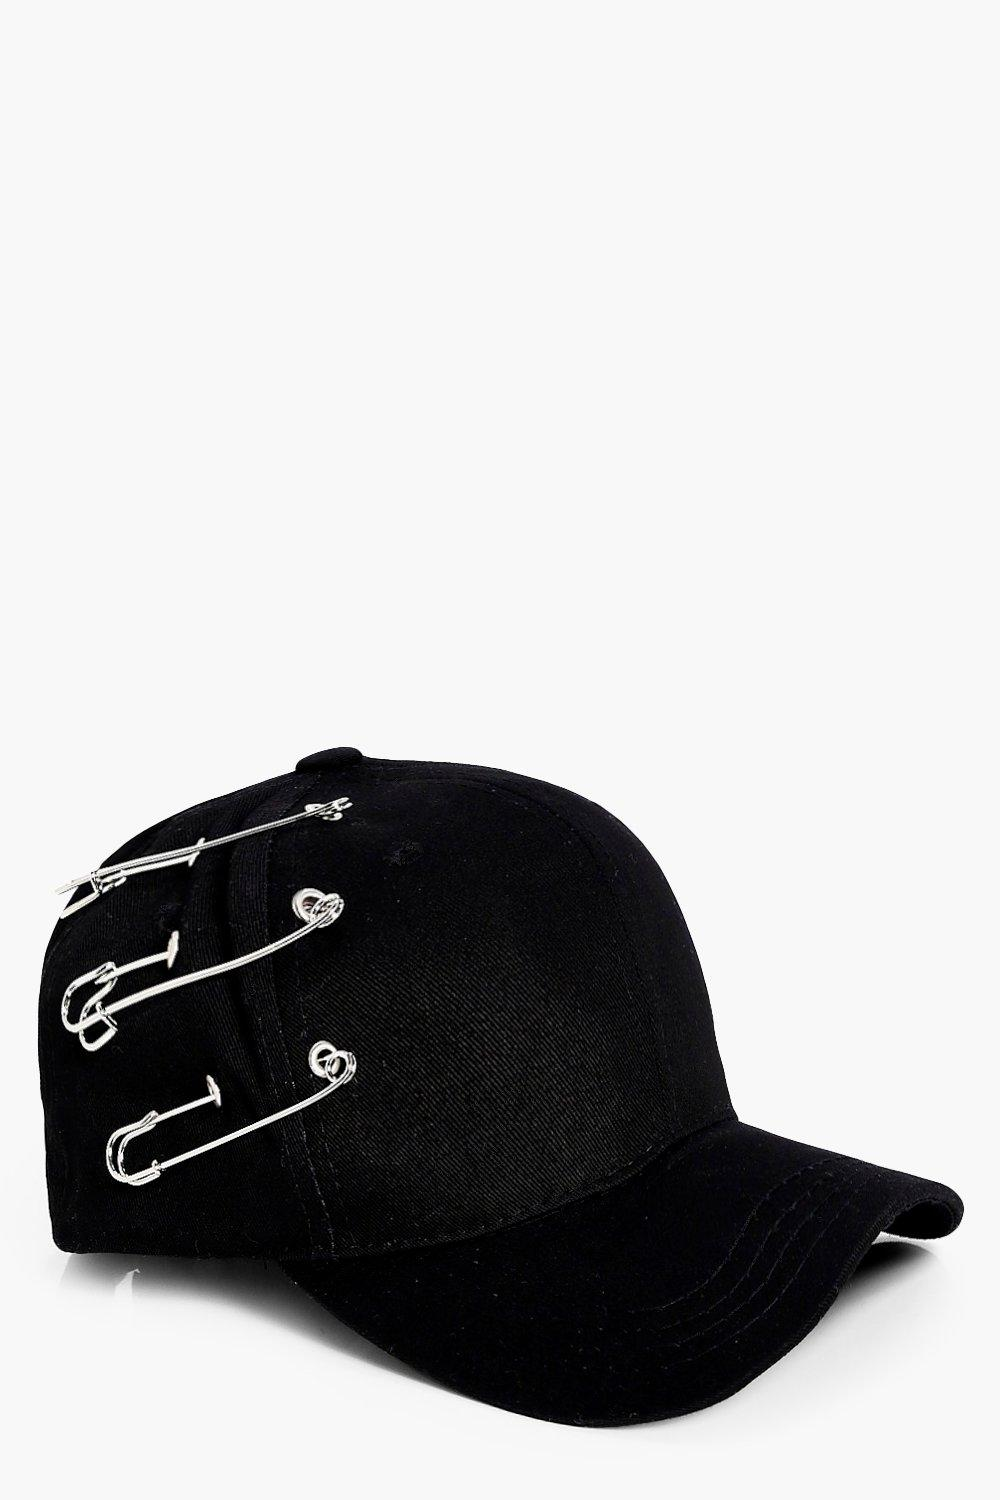 Safety Pin Baseball Cap - black - Freya Safety Pin